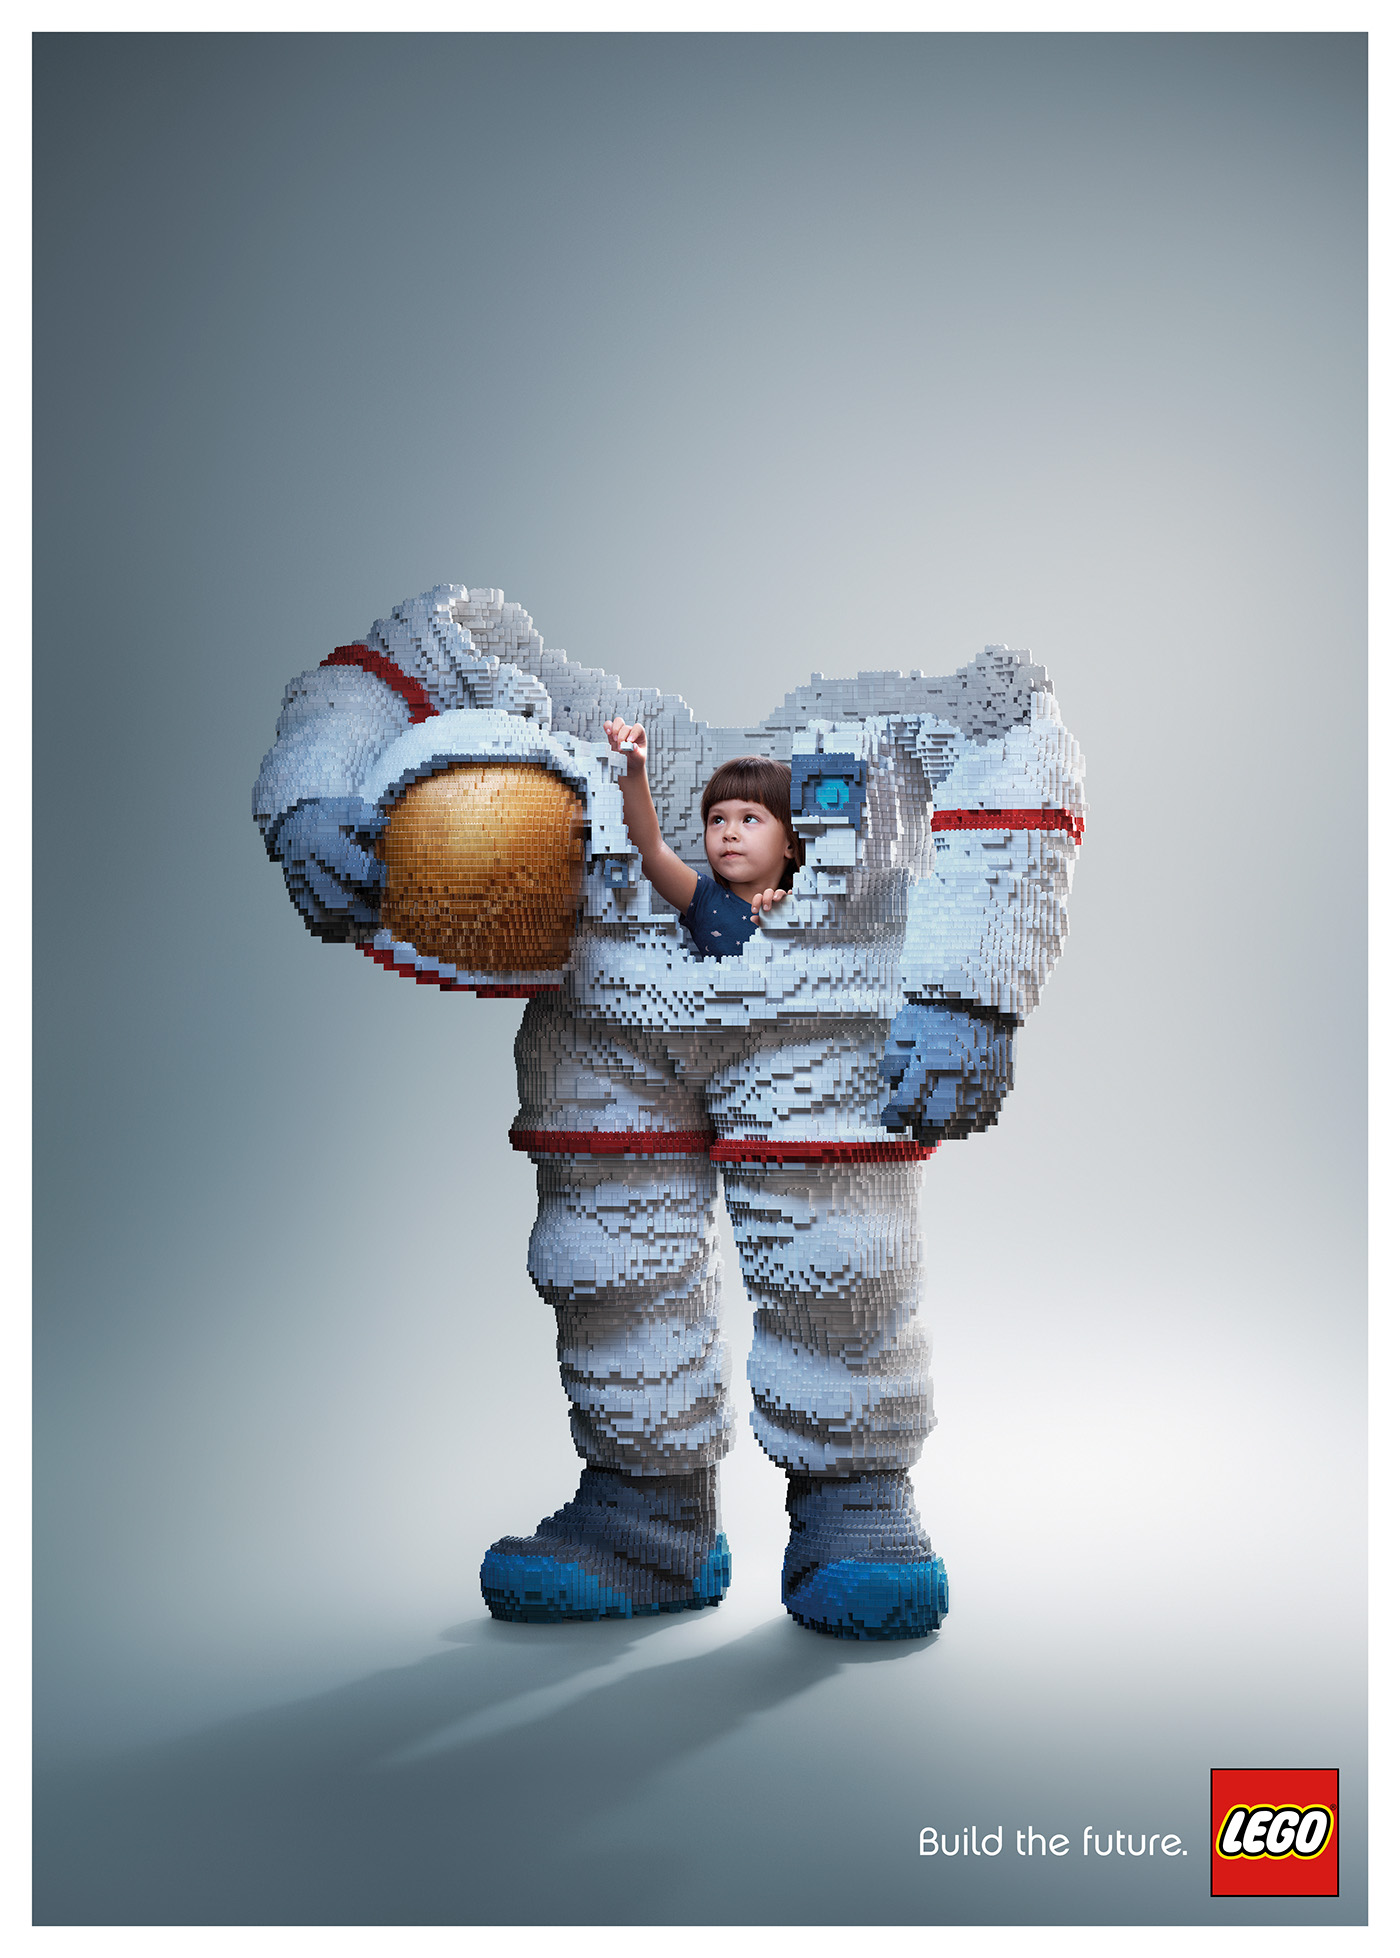 Lego: Build the future - Astronaut